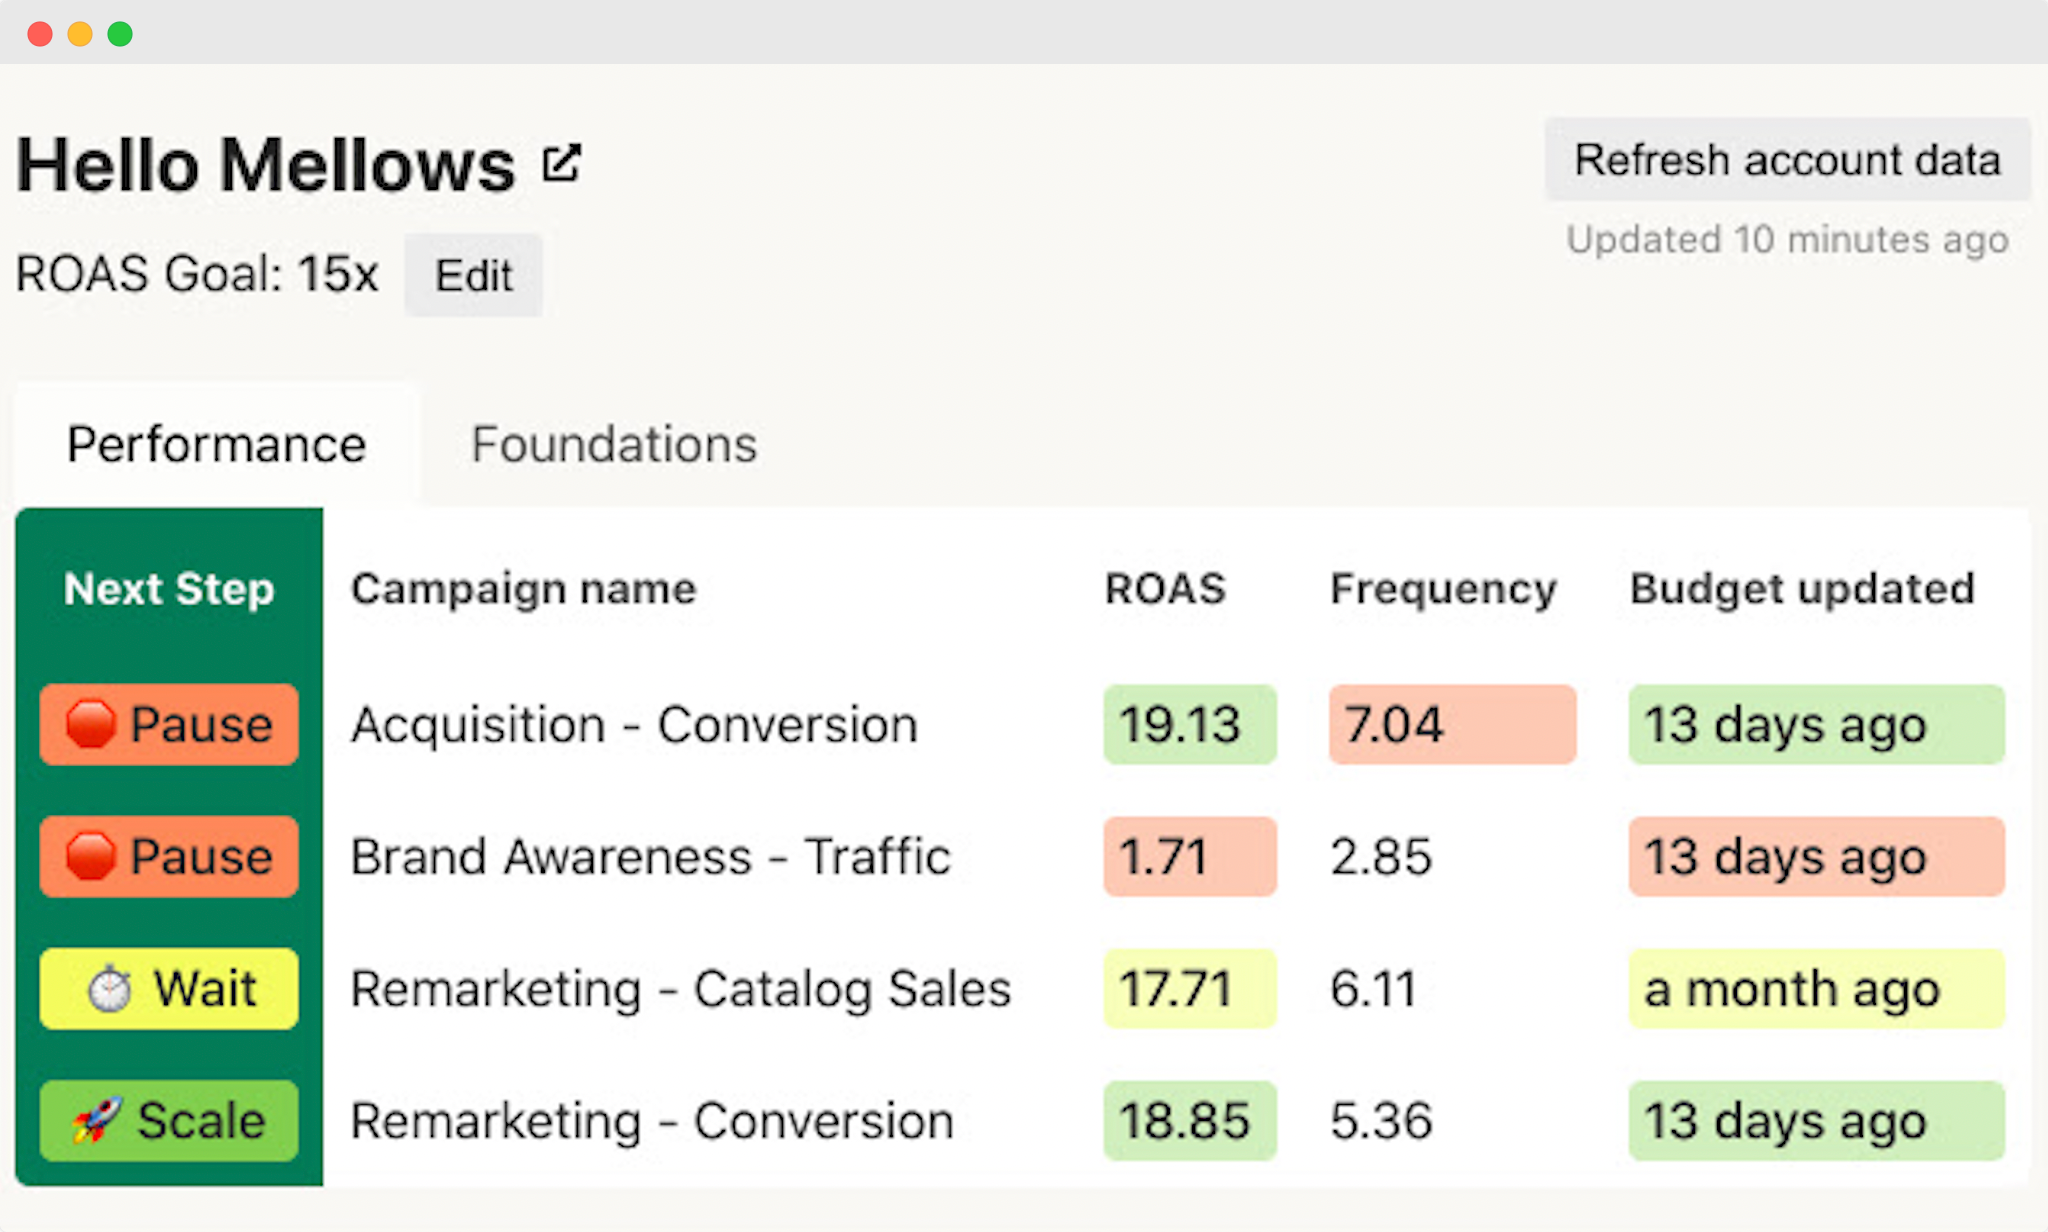 Hello Mellows chrome extension screenshot showing data like ROAS and frequency